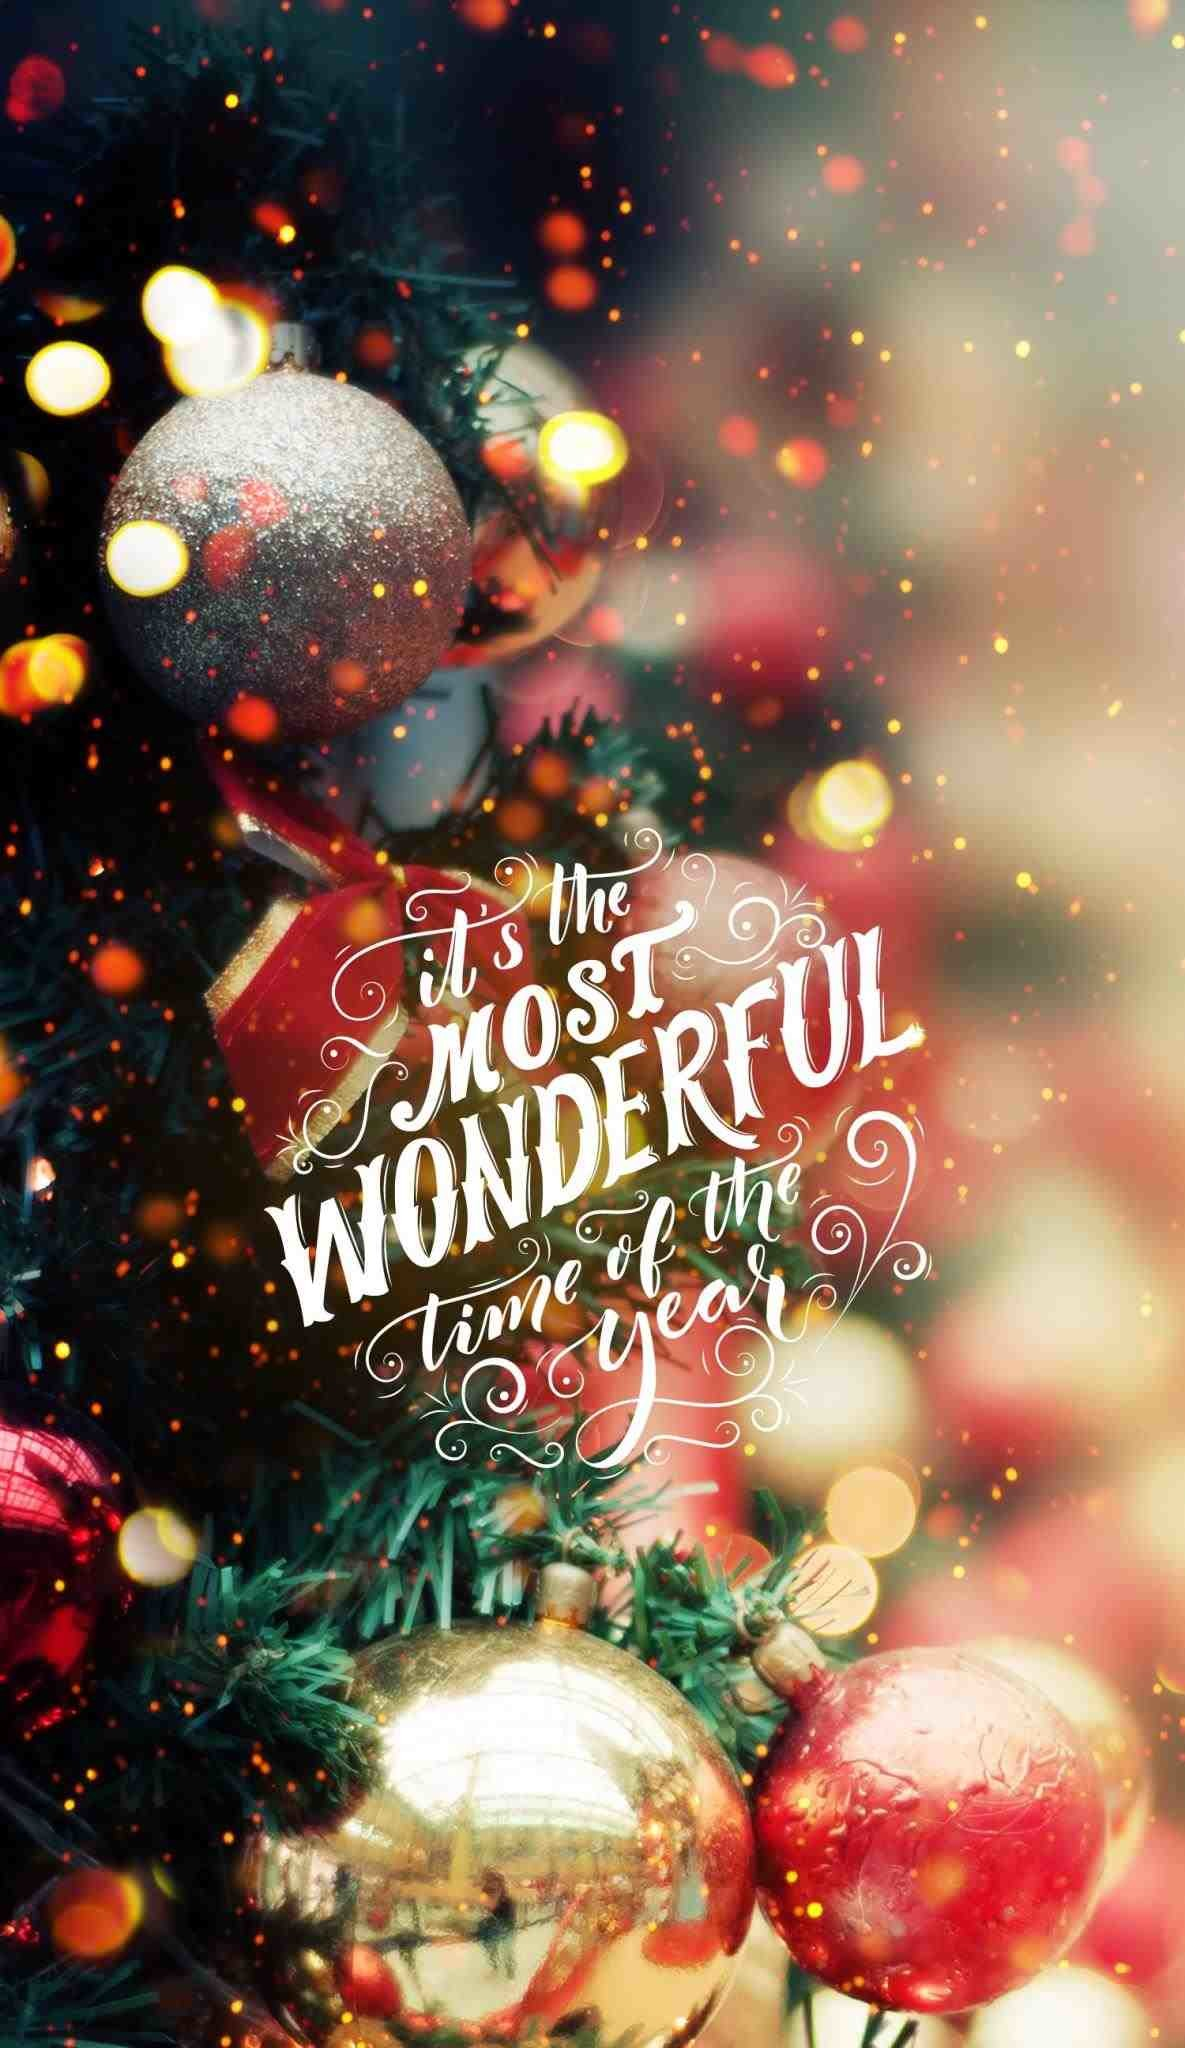 Christmas love wallpaper 57 images - Love wallpaper photo gallery ...